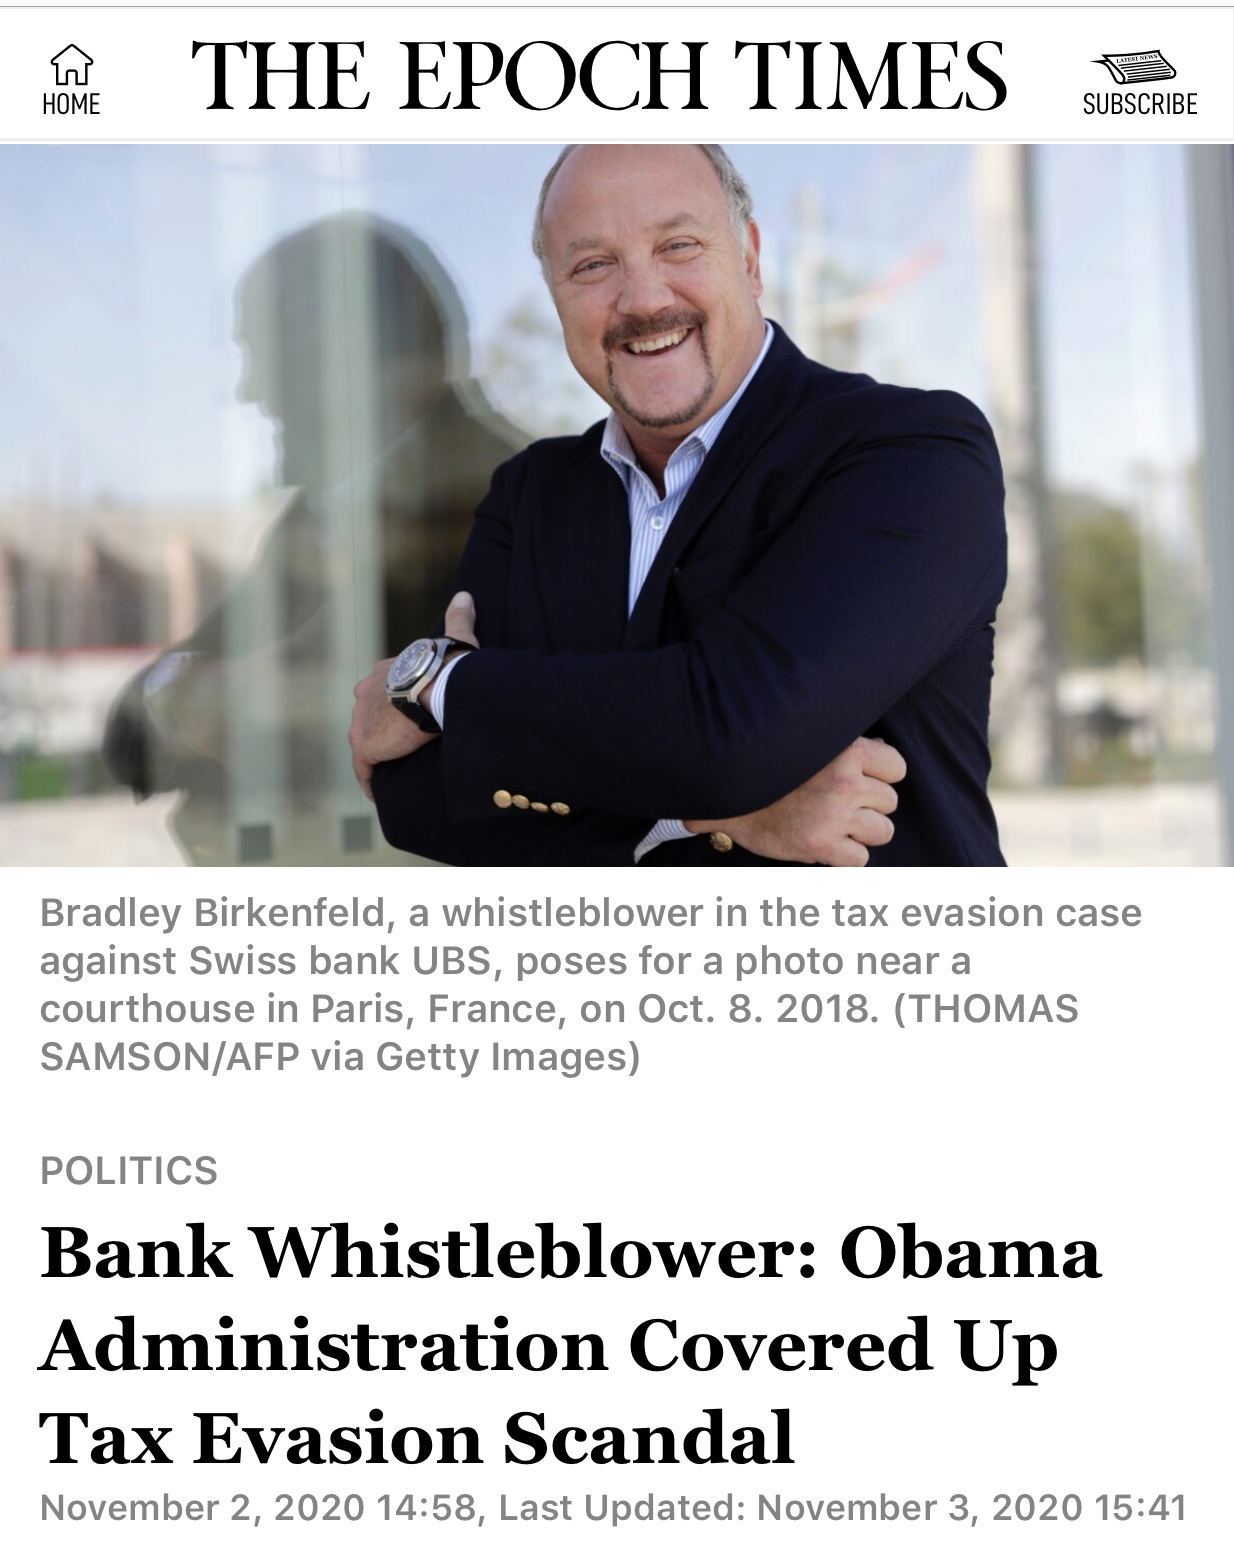 Bank Whistleblower: Obama Administration Covered Up Tax Evasion Scandal